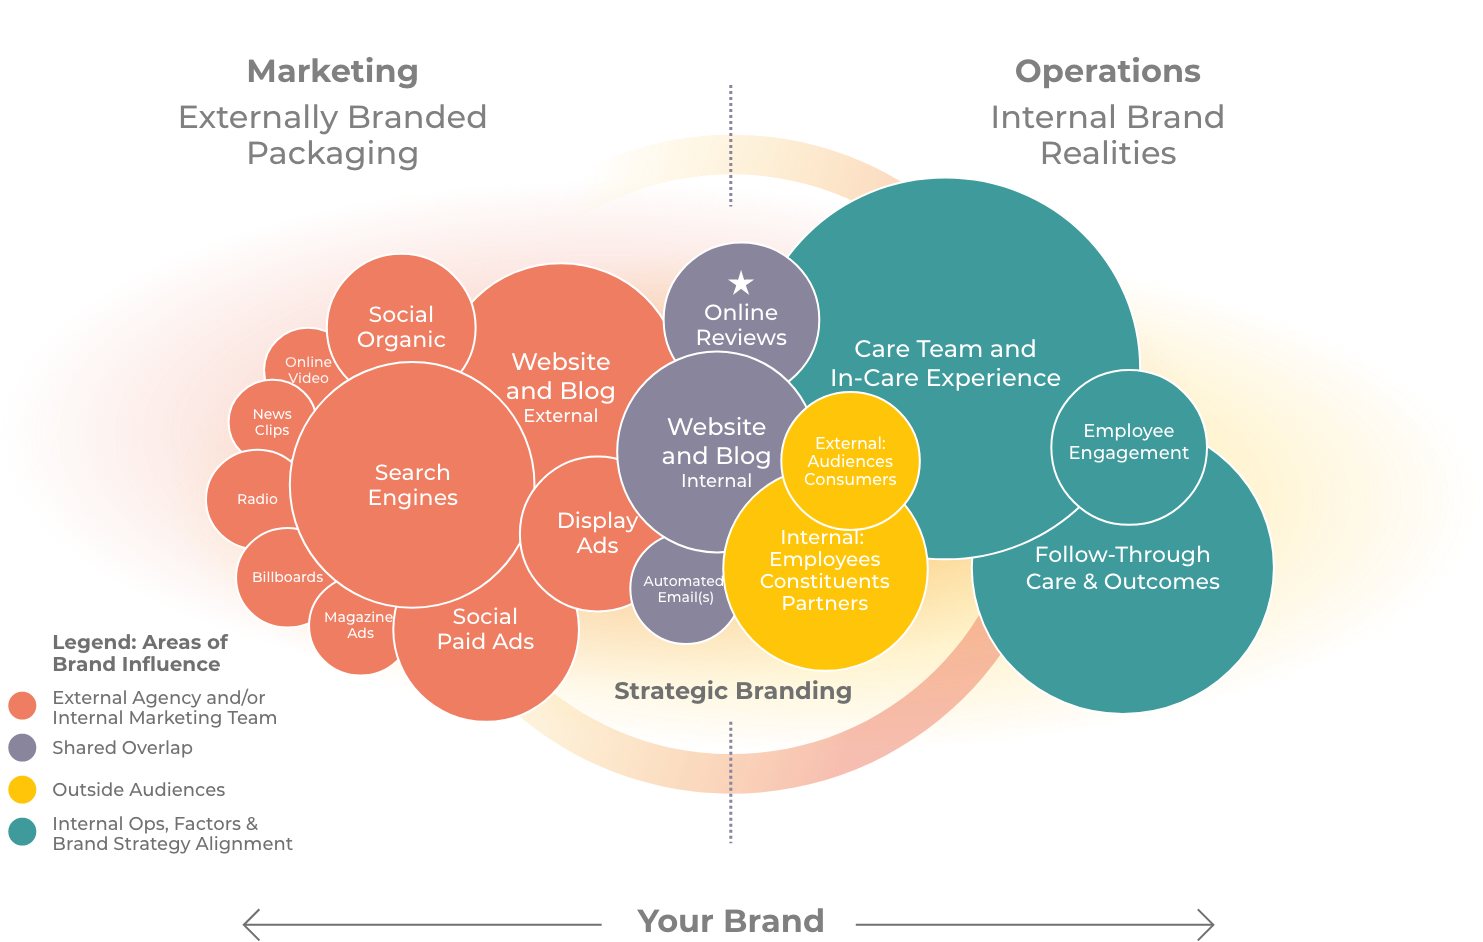 infographic showing the connecting between marketing, brand strategy, and business operations